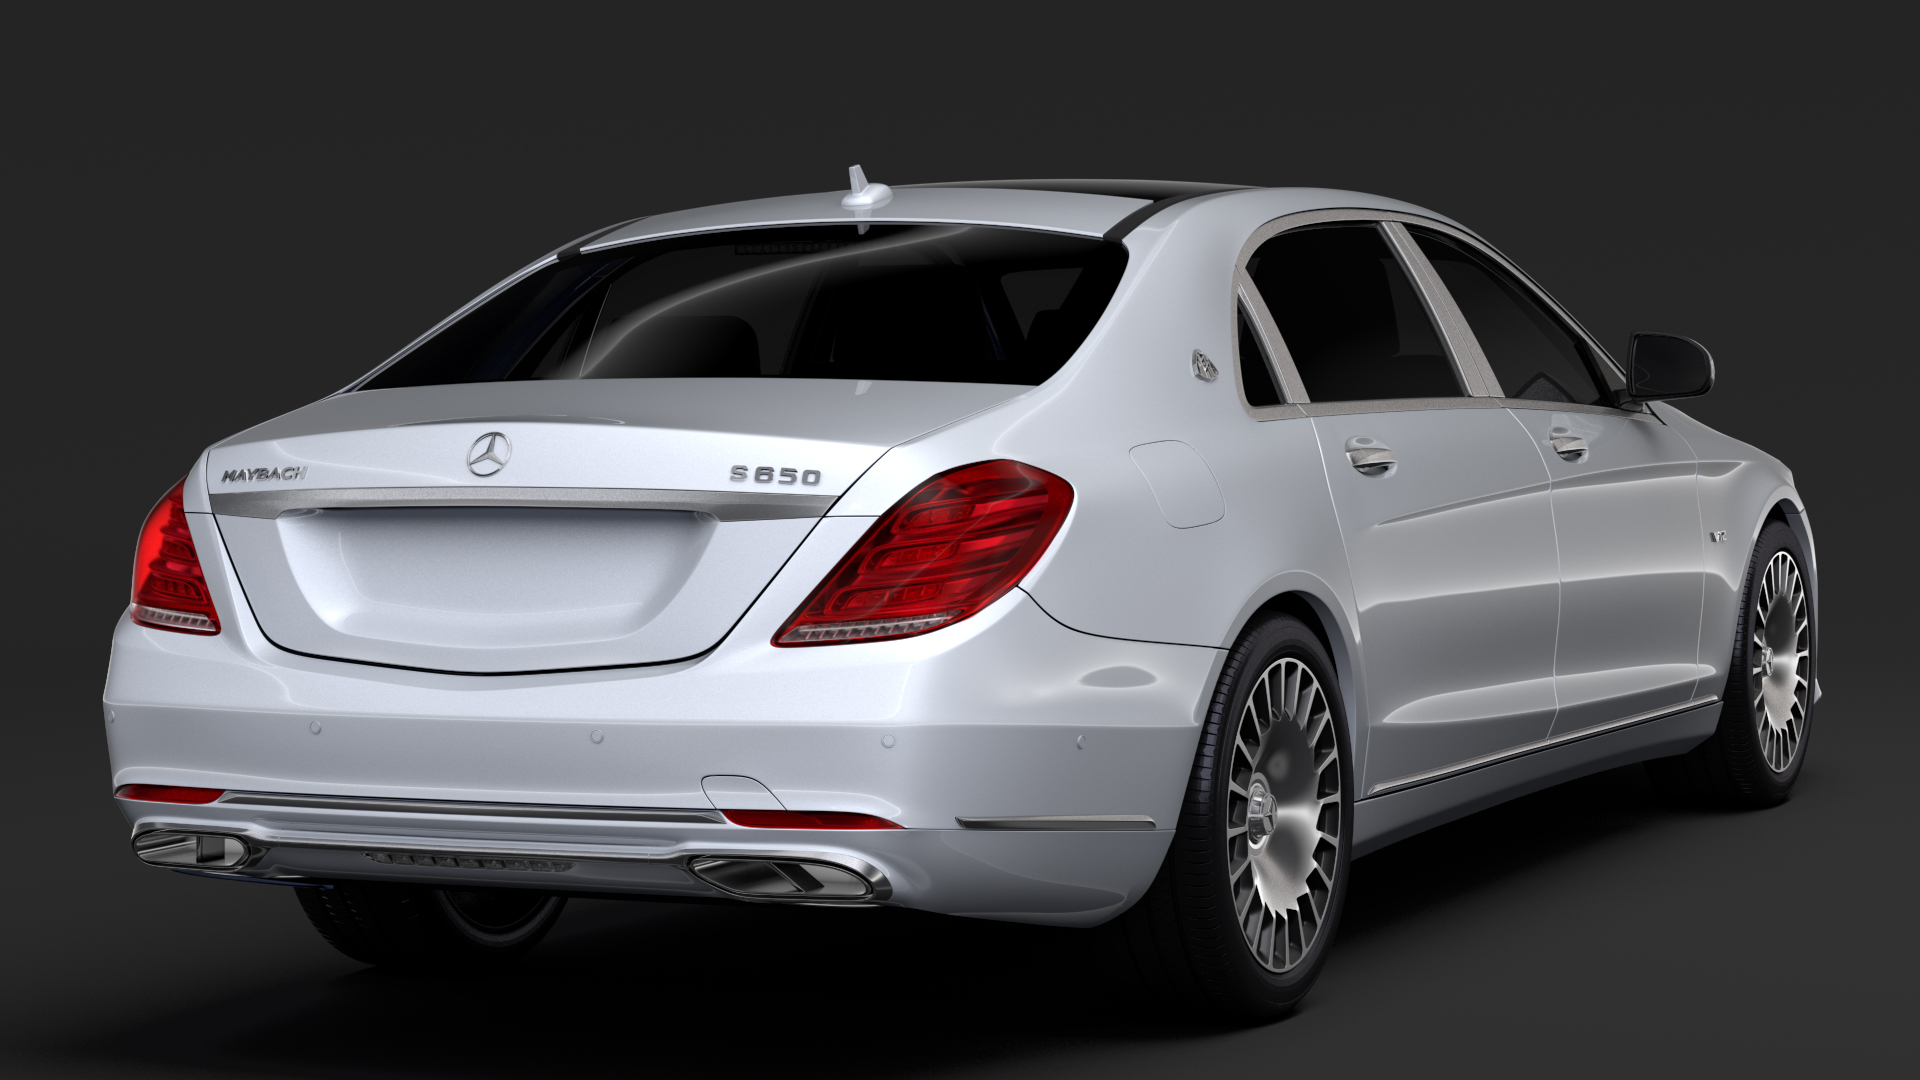 mercedes maybach s 650 x222 2018 3d model 3ds max fbx c4d lwo ma mb hrc xsi obj 284537